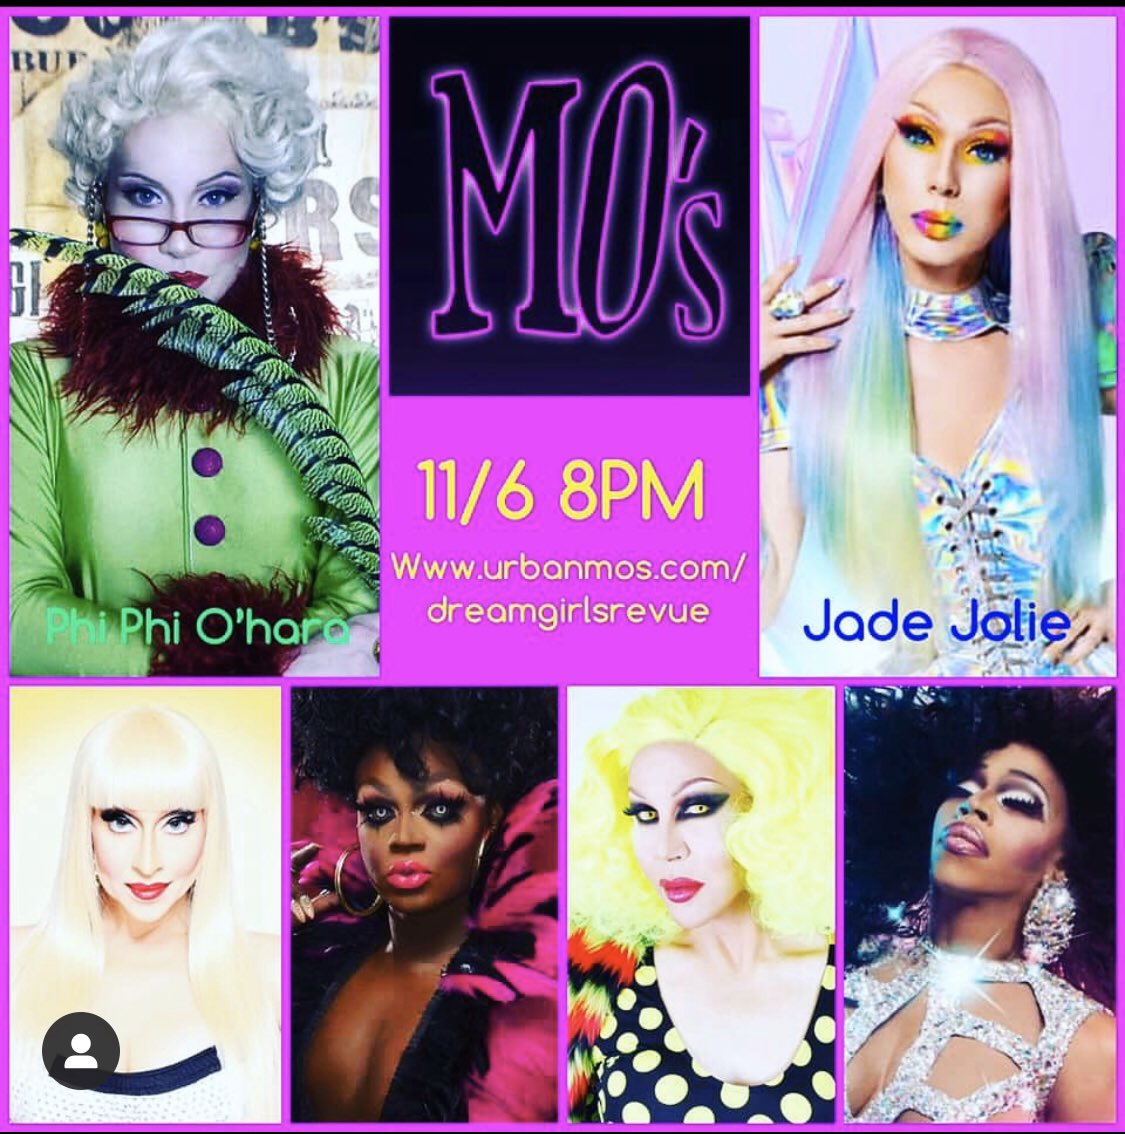 Catch me at @mosuniverse tomorrow in SD, Cali with @PhiPhiOhara @TheOnlyMayhem @ChadMichaels1 #VancieVega & #JasmineMasters